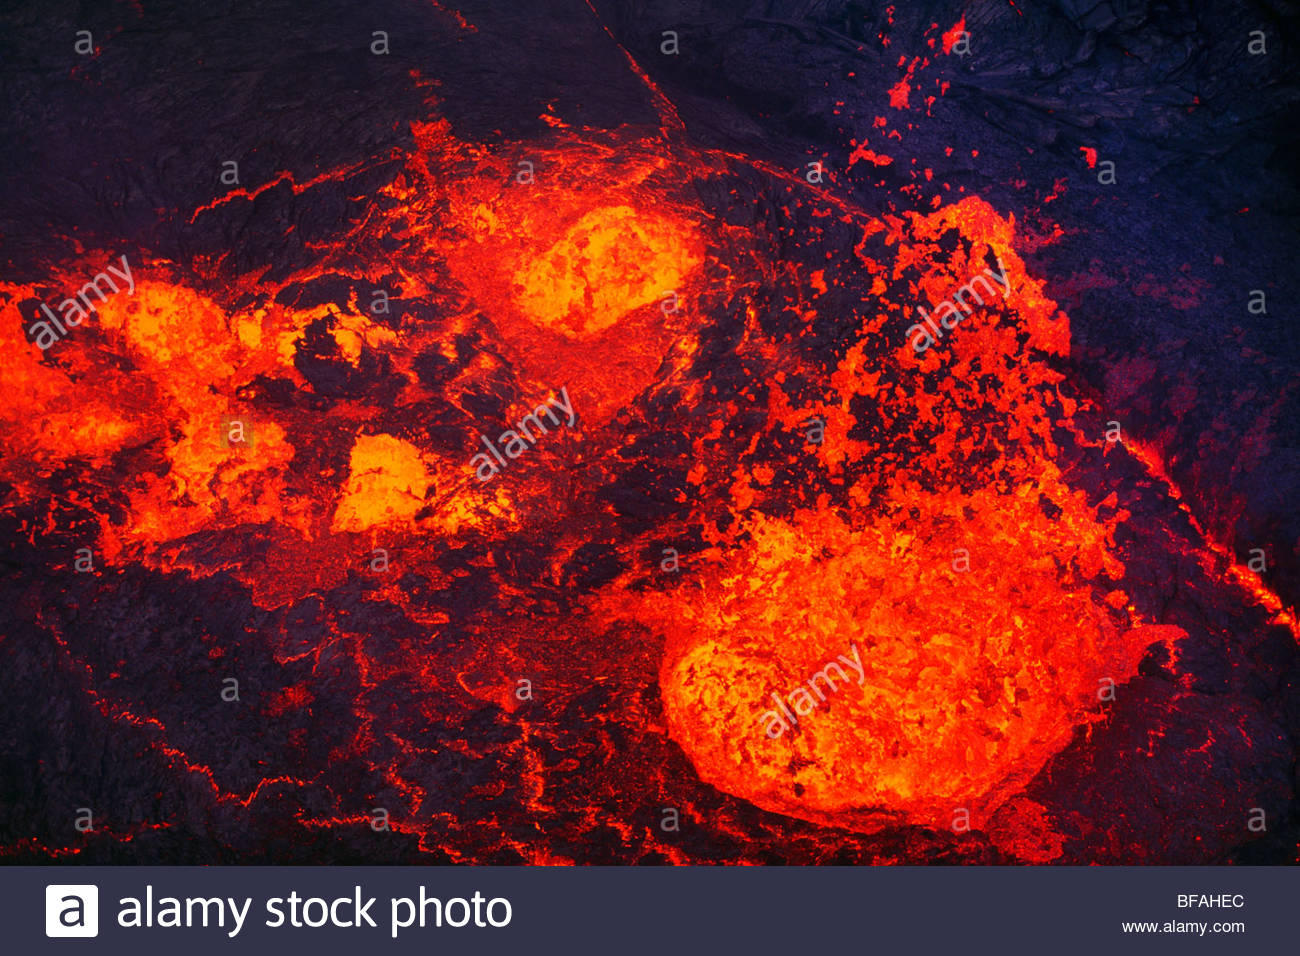 Lavasee im Pu'u ' O'o-Krater, Hawai?i-Volcanoes-Nationalpark, Hawaii Stockbild